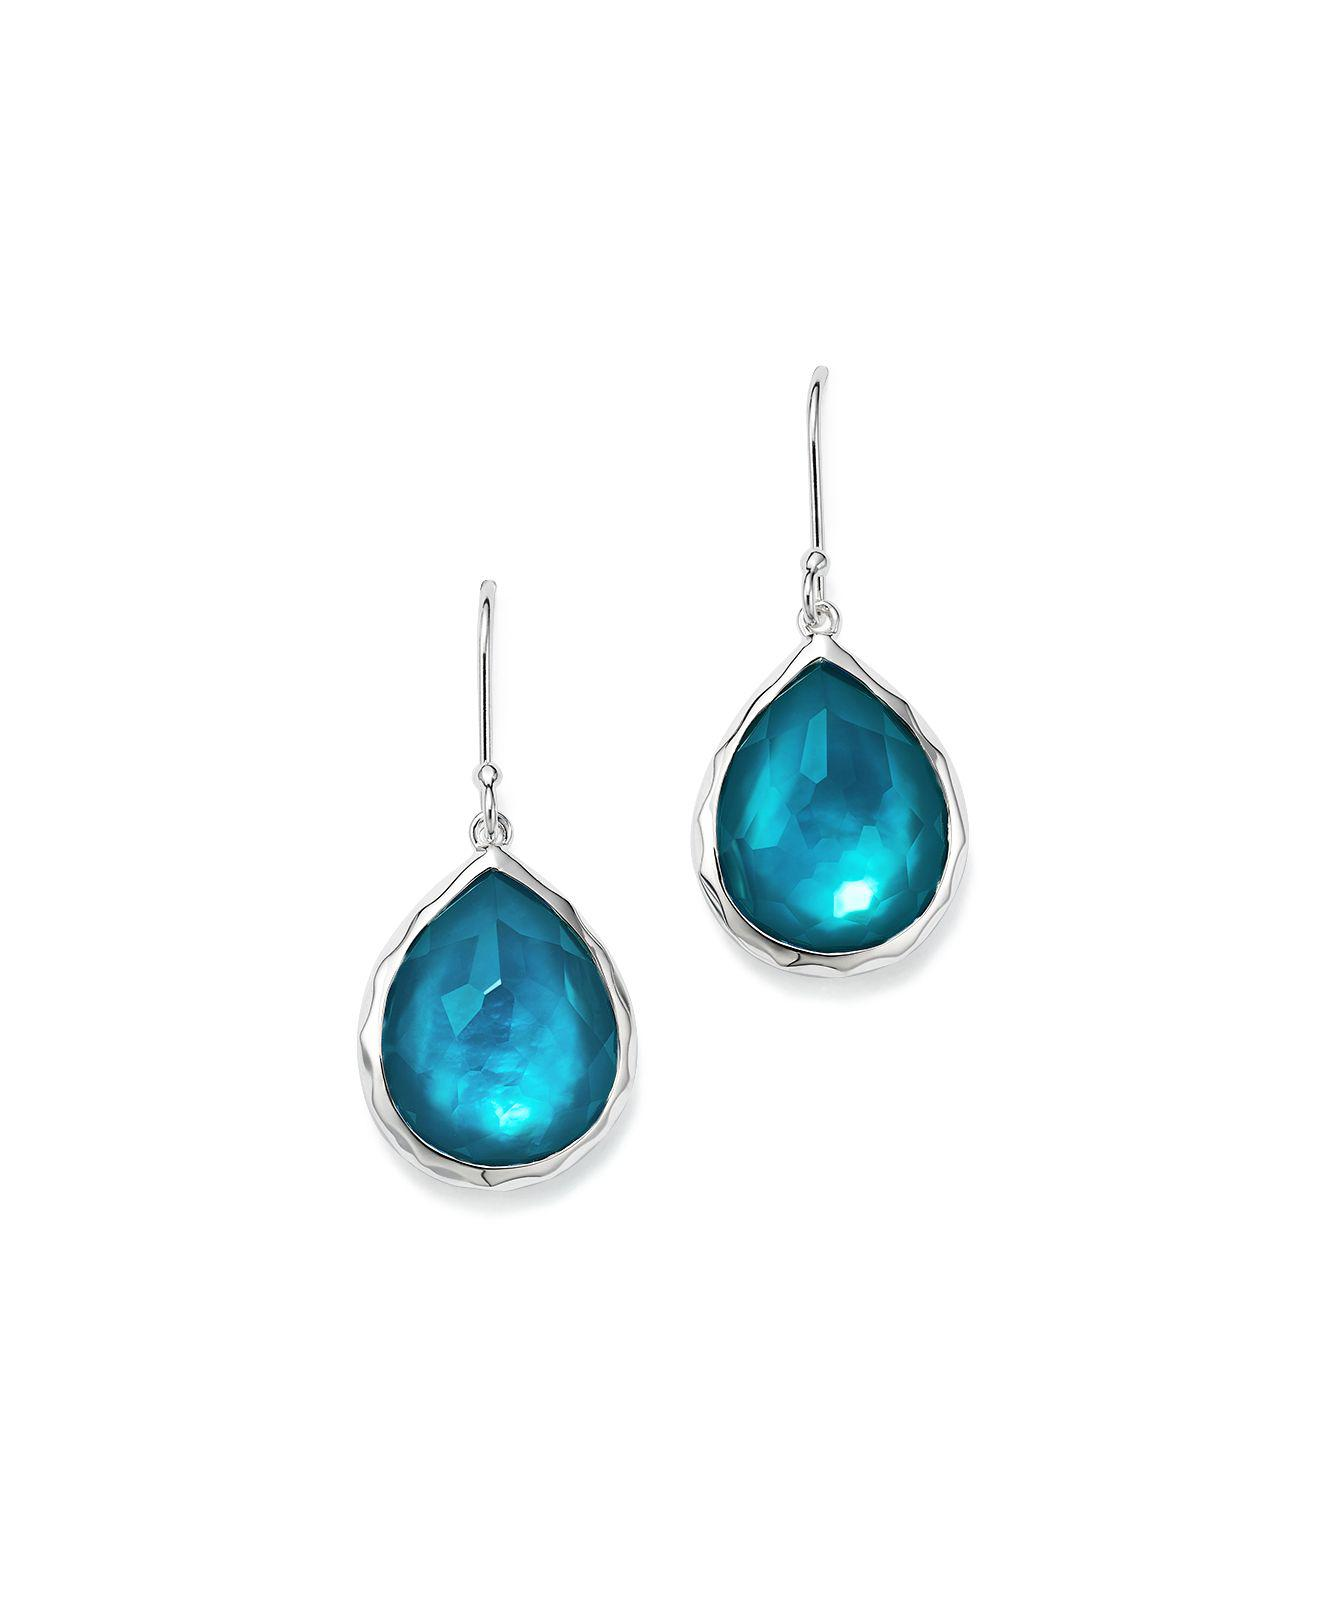 Ippolita Sterling Silver Wonderland Teardrop Earrings kTWMYa8CB